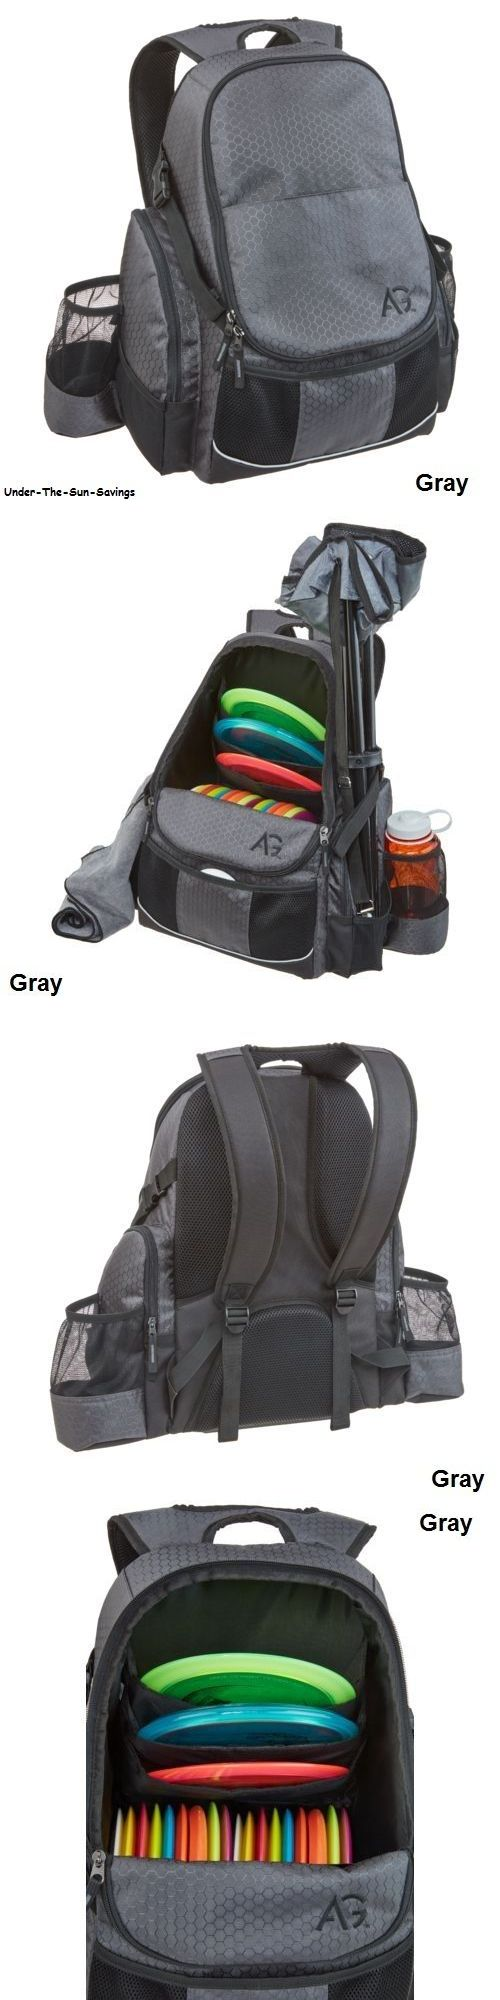 Disc Golf 20851: Disc Golf Frisbee Bag Gray Outdoor Deluxe Backpack Holds 21+ Sports Discs New -> BUY IT NOW ONLY: $40.85 on eBay!